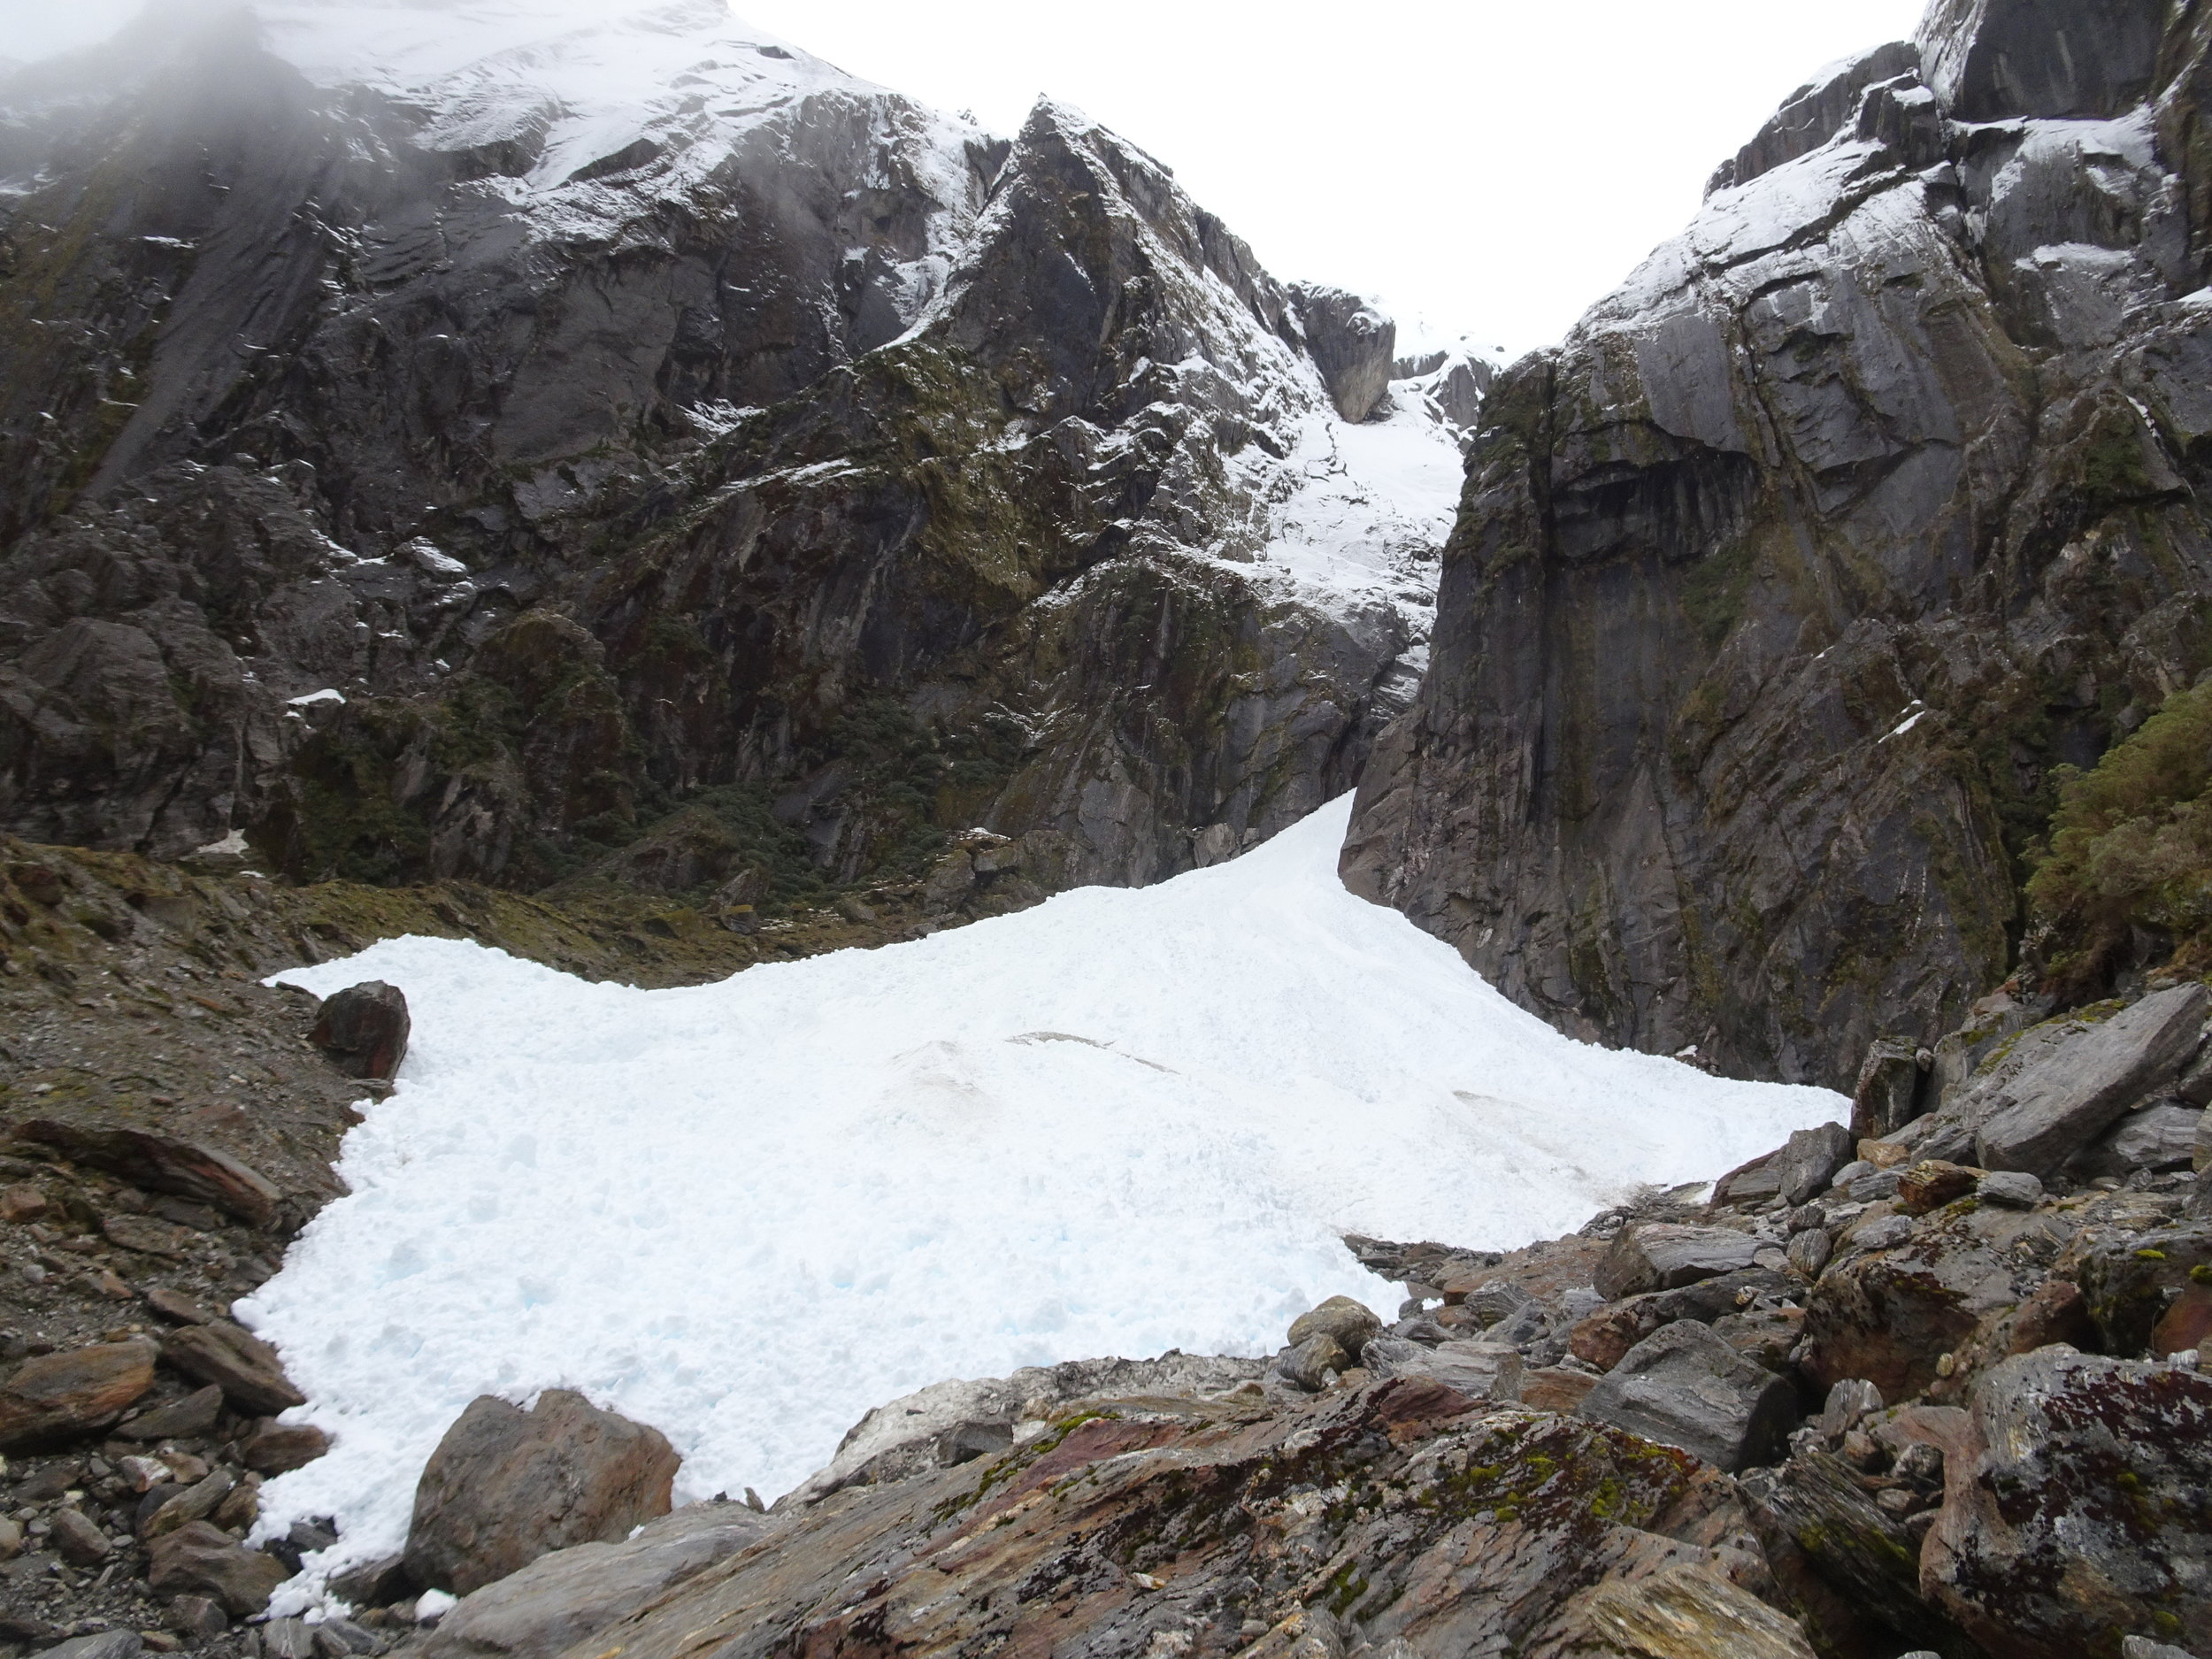 Well below snowline, this debris might be 20meters deep.